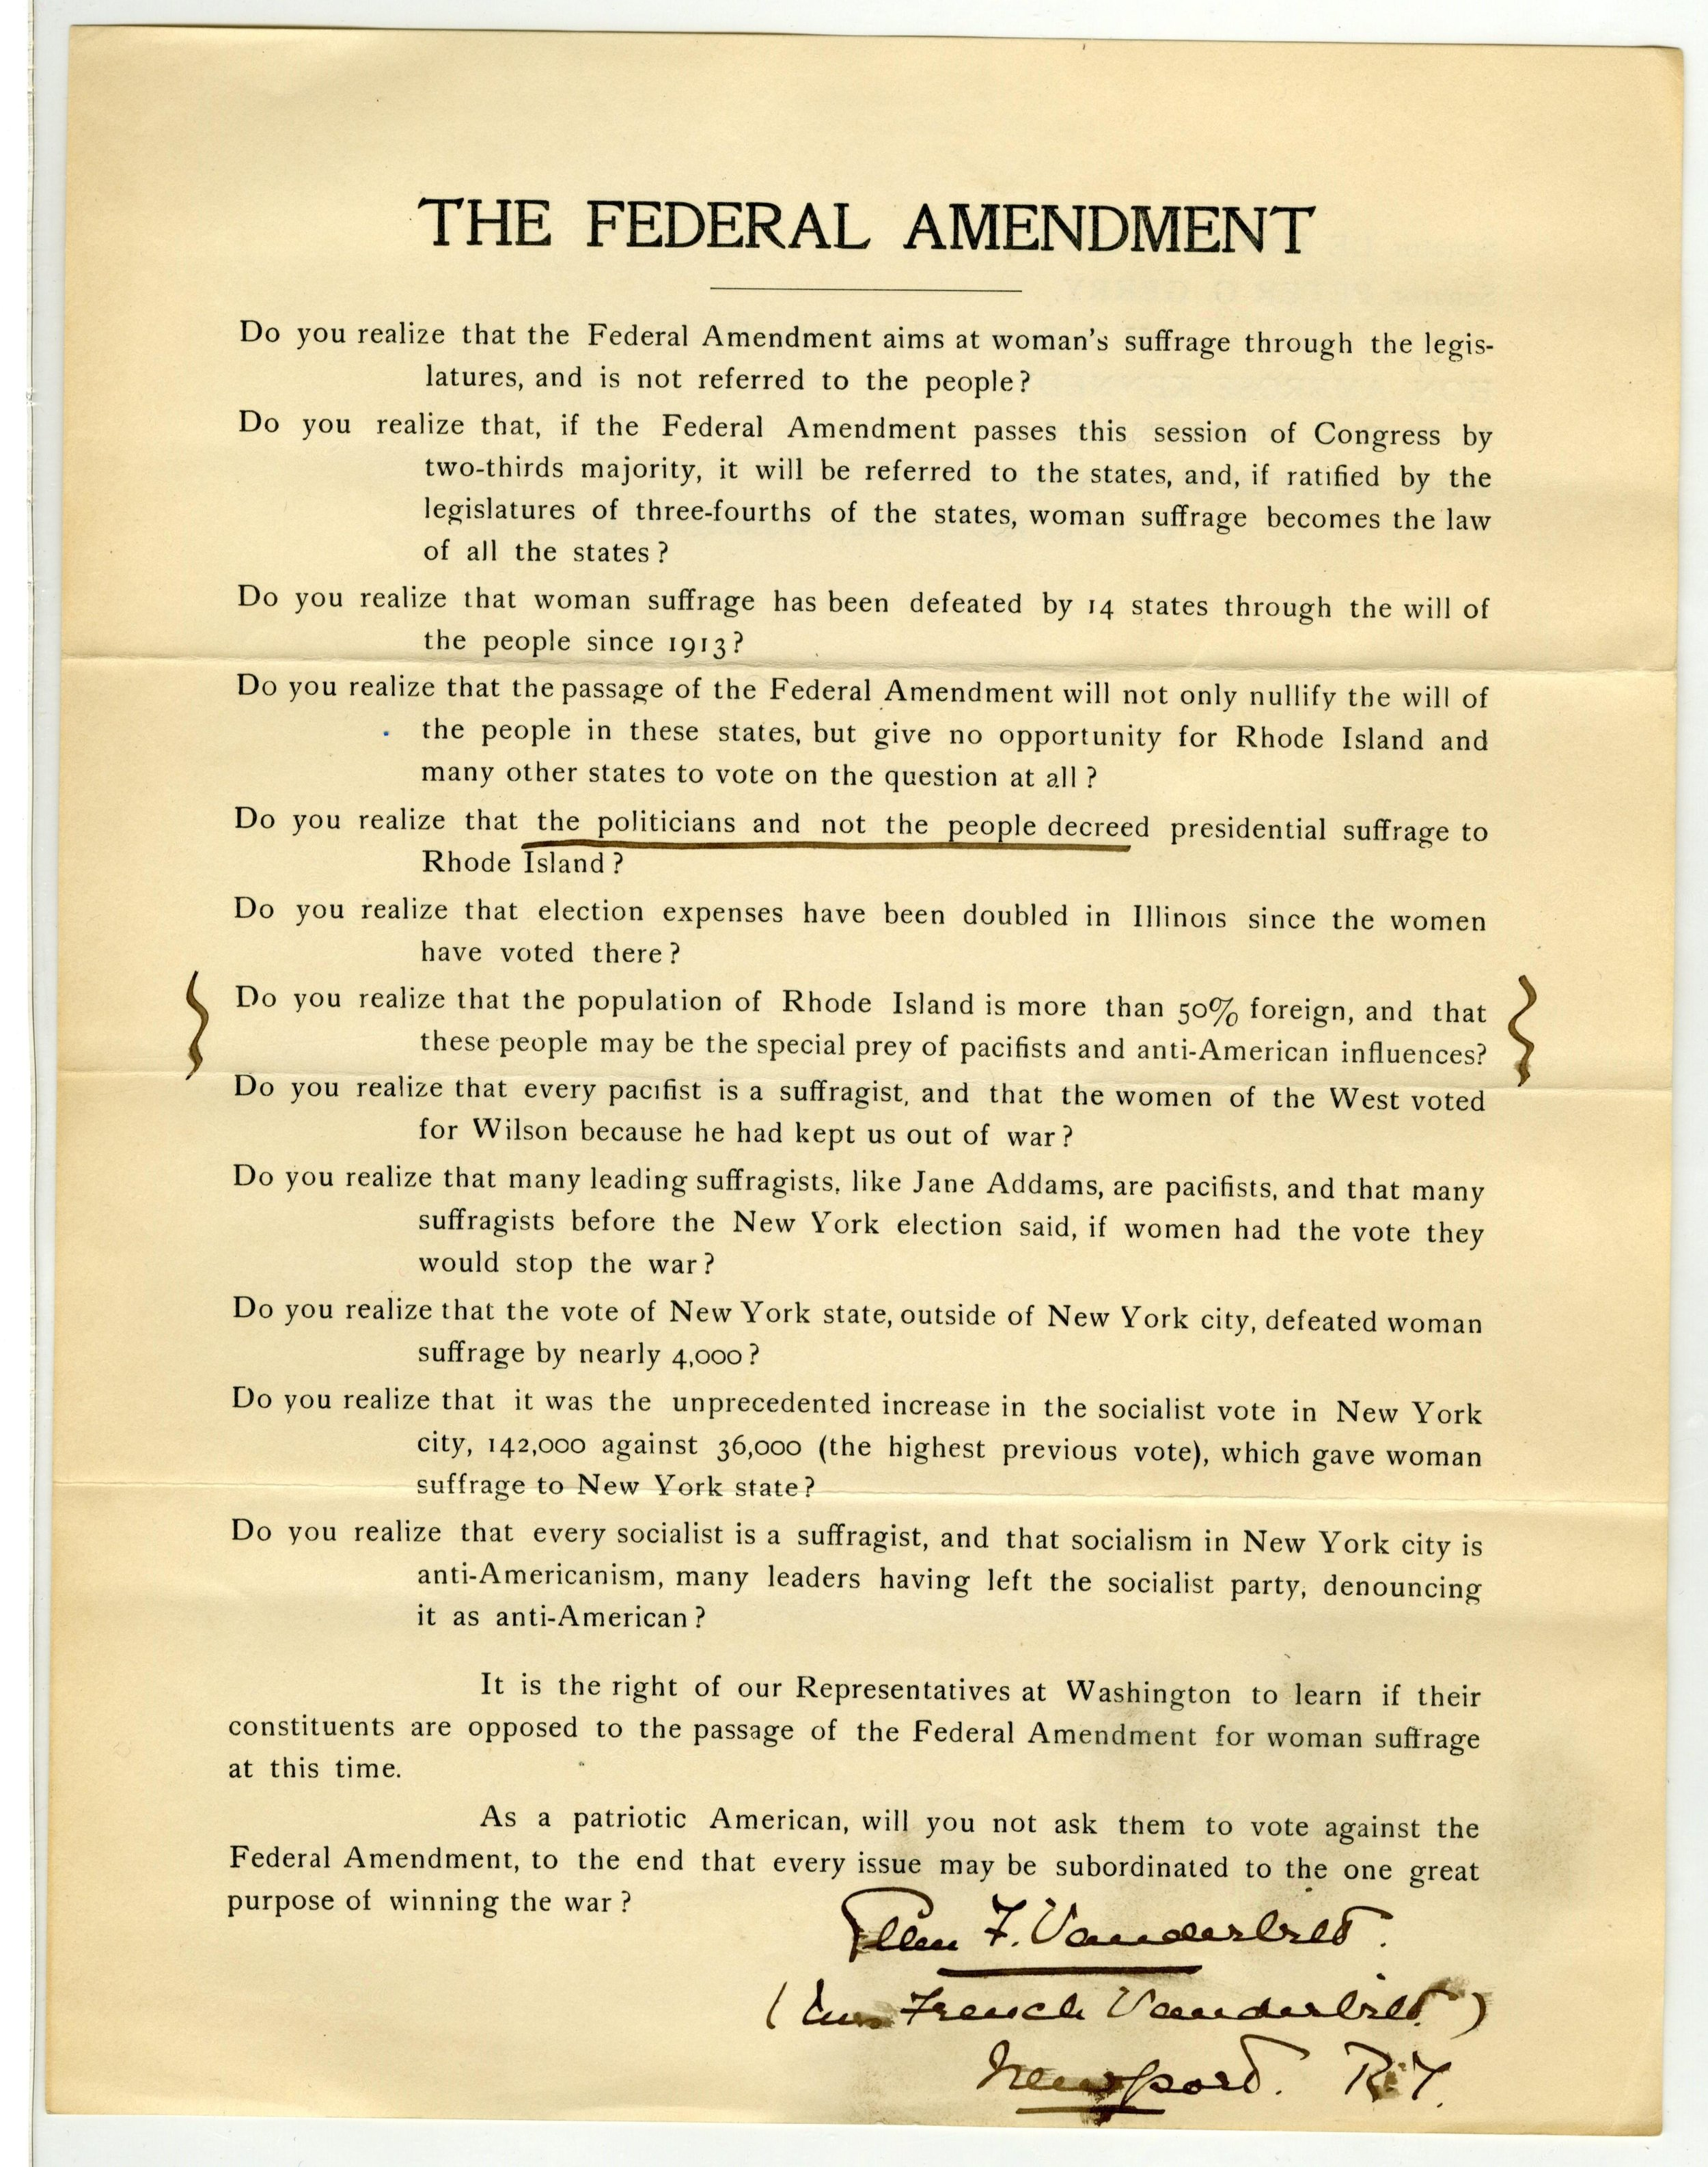 Letter Regarding the Federal Amendment from Ellen F. Vanderbilt